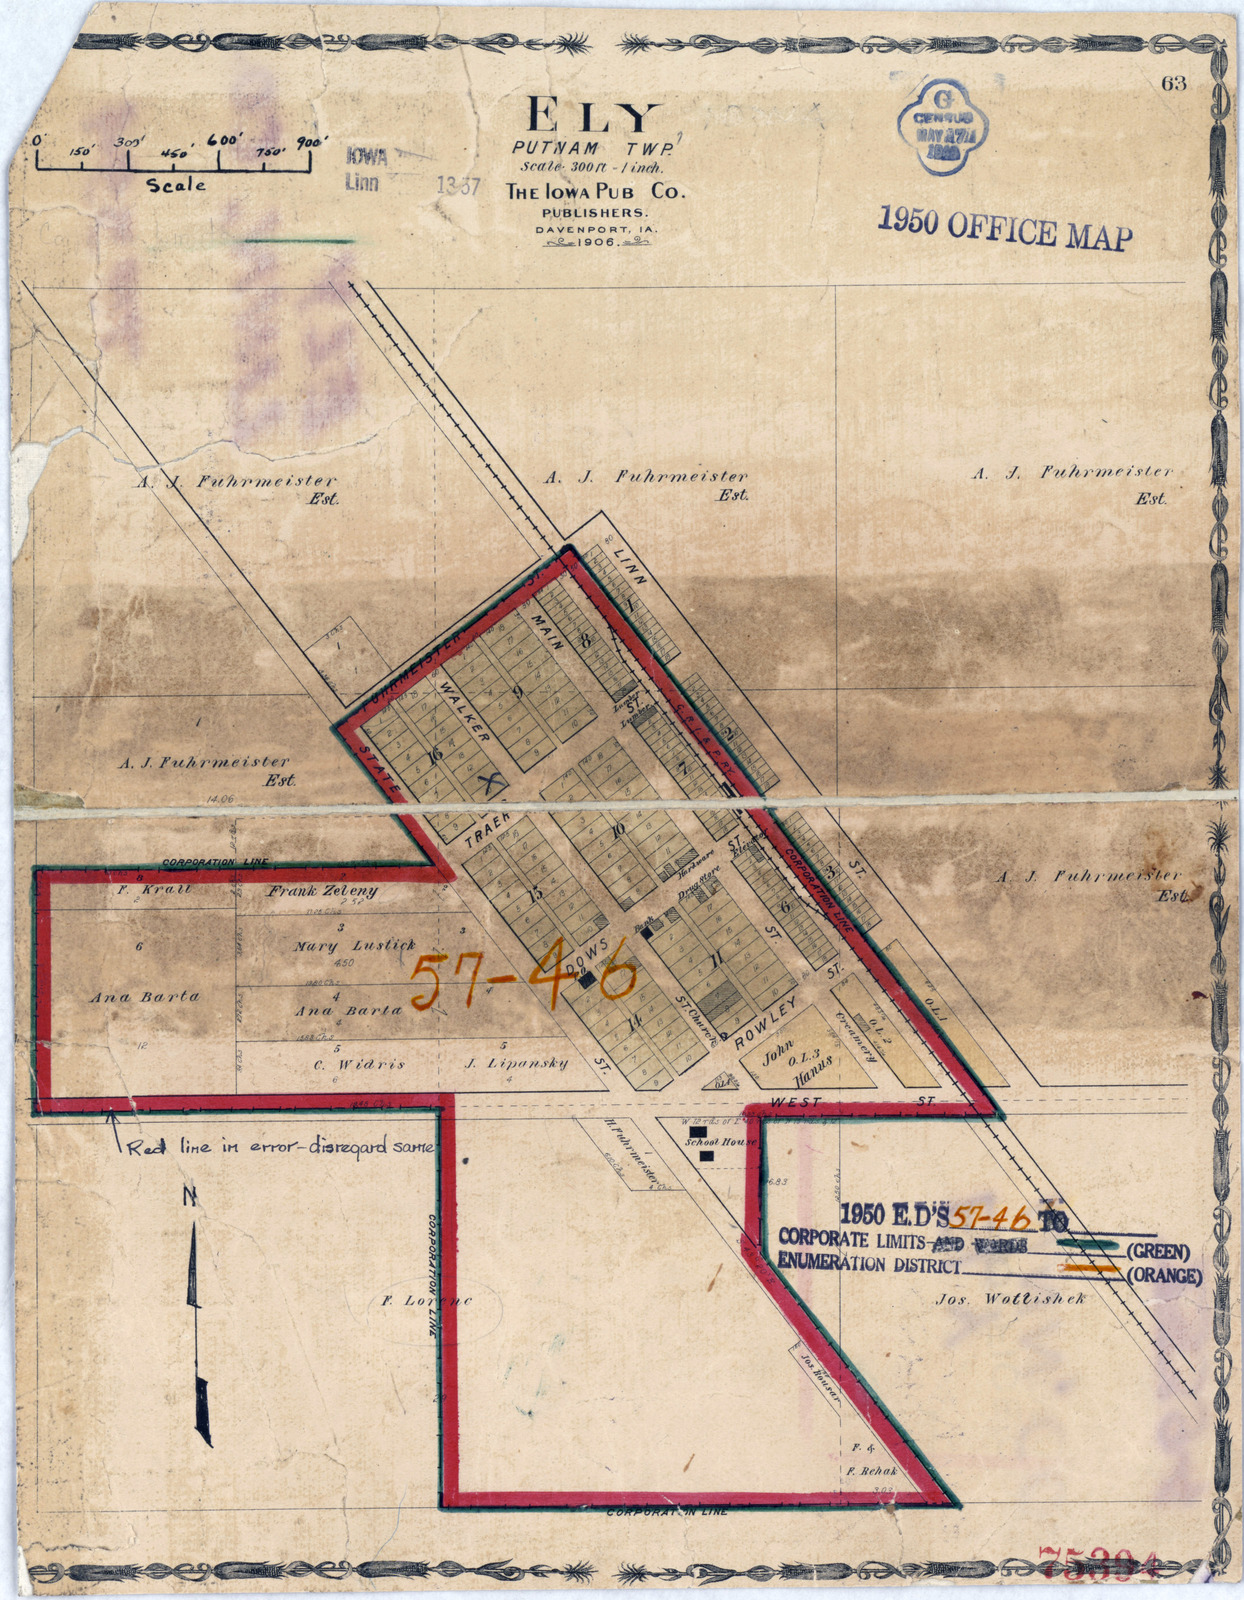 1950 Census Enumeration District Maps - Iowa (IA) - Linn County ...